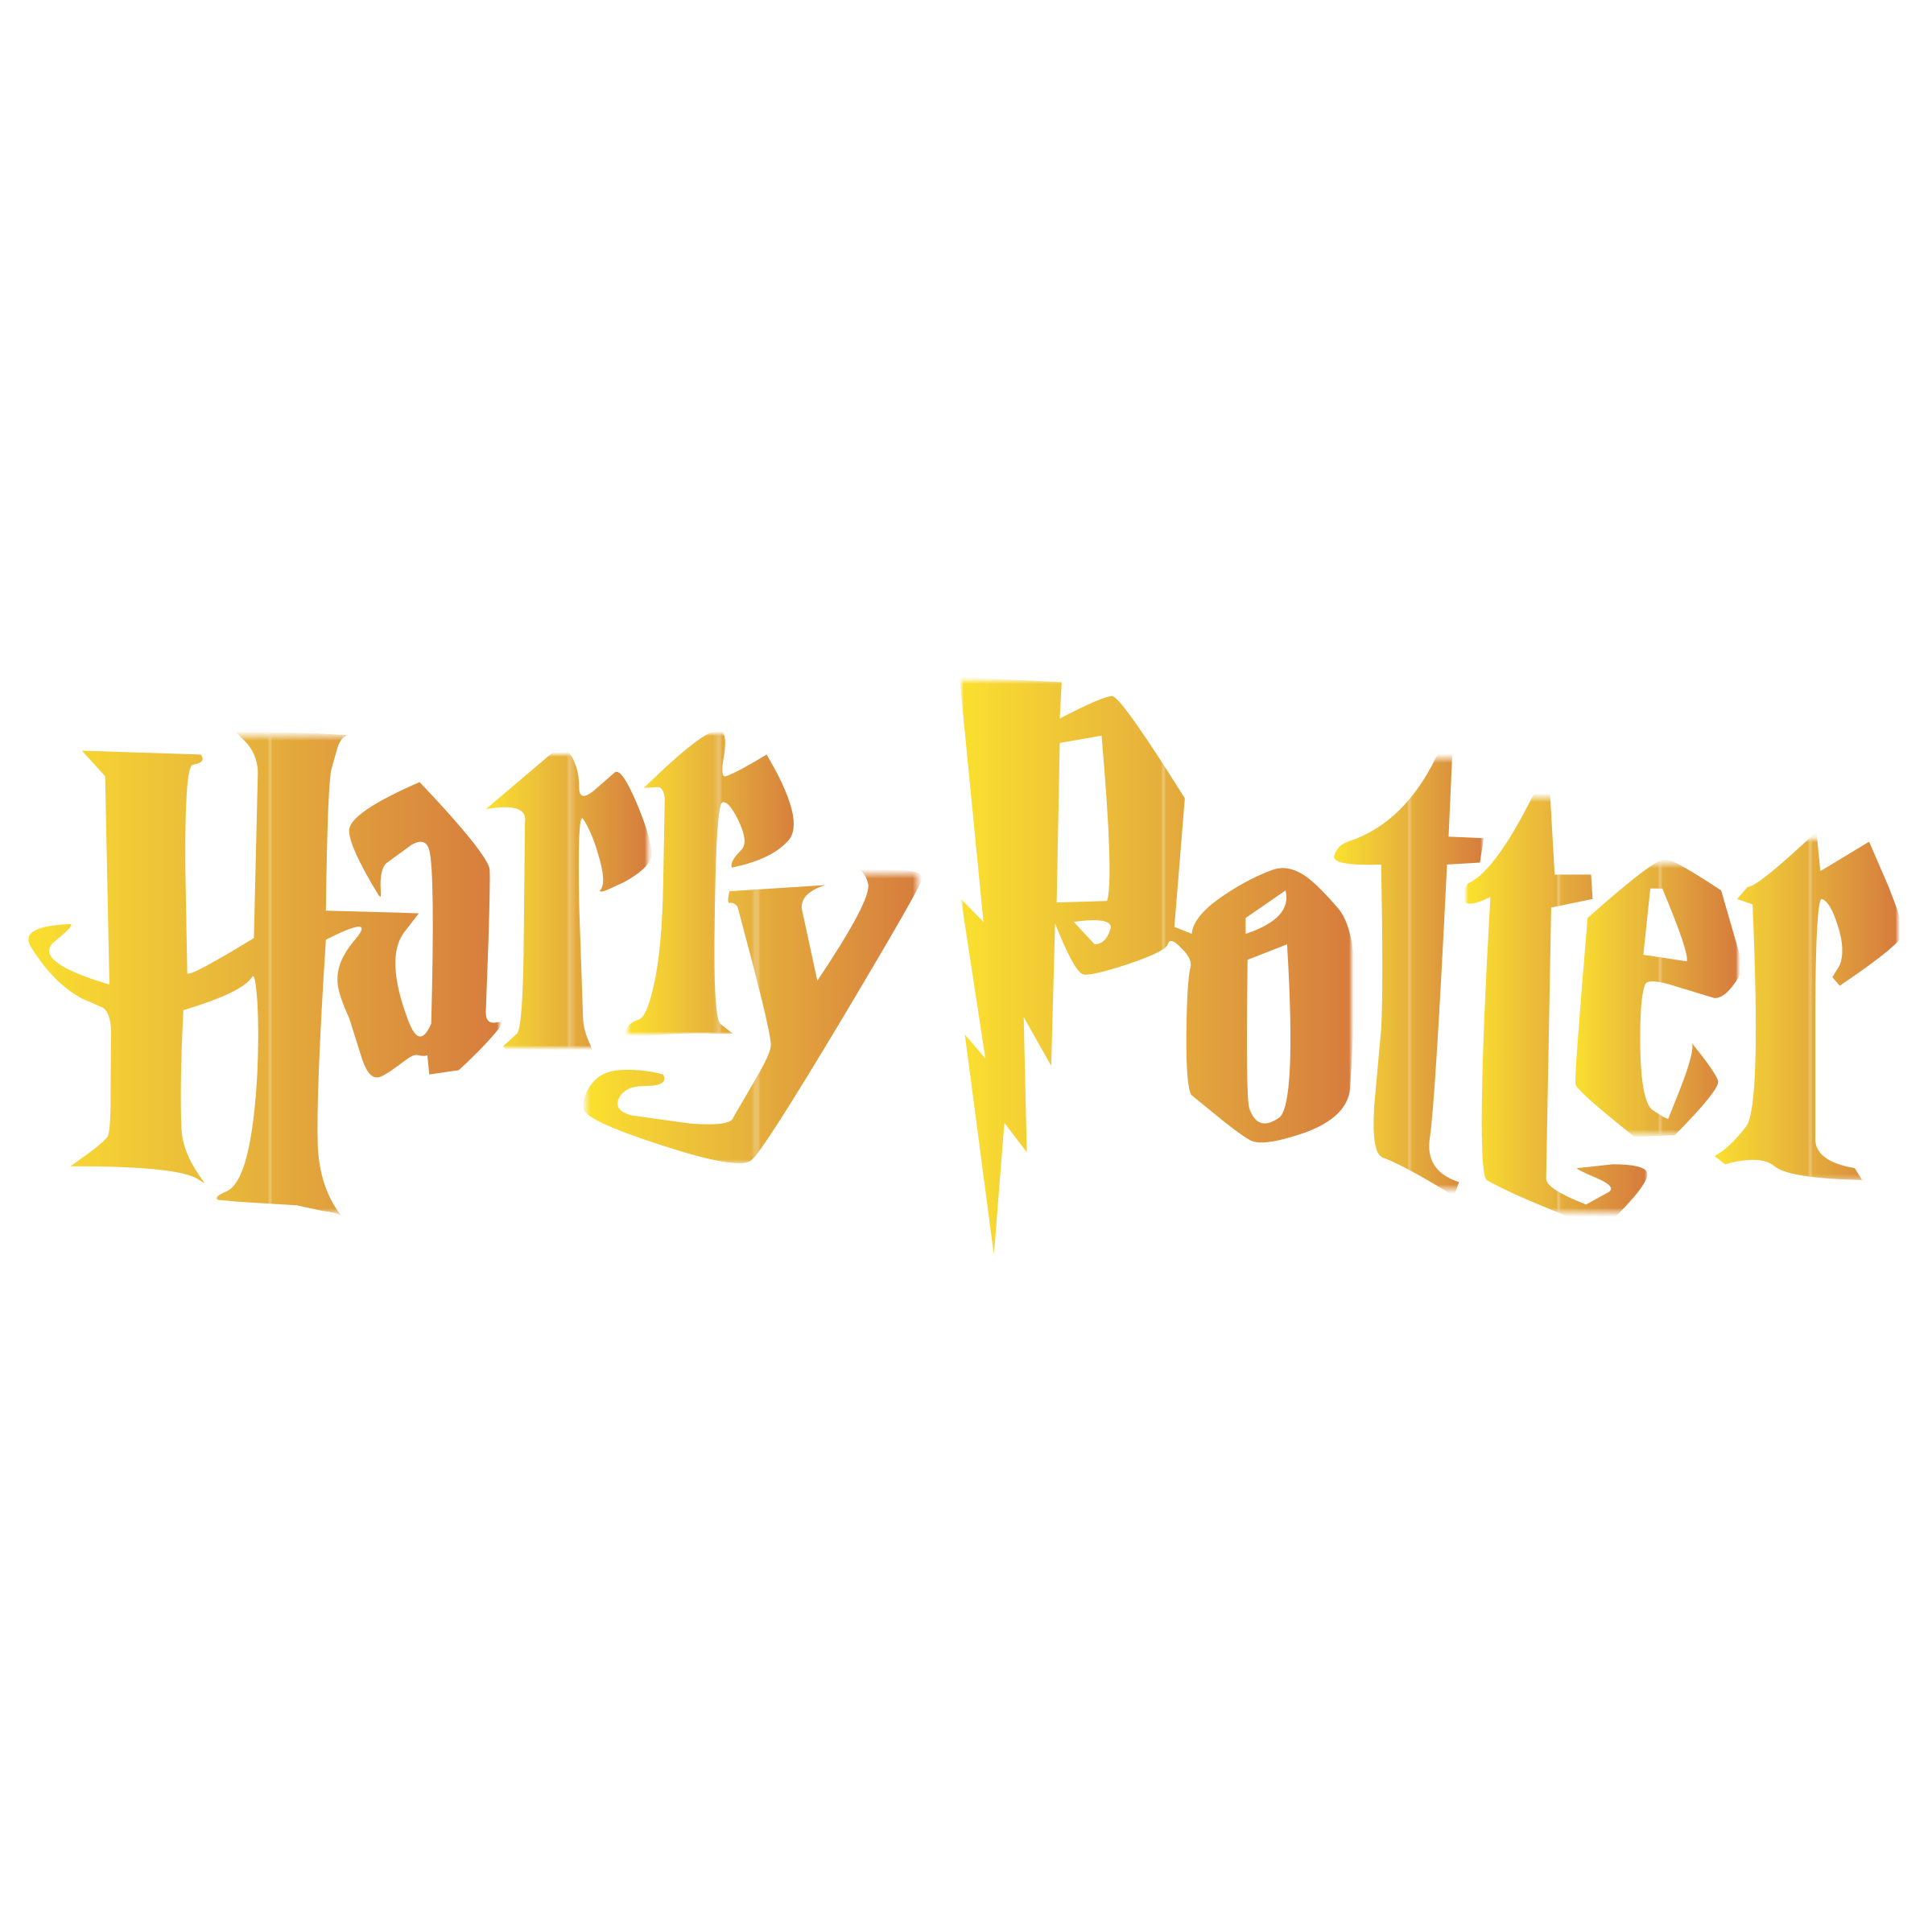 Harry Potter Logo PNG Transparent & SVG Vector.